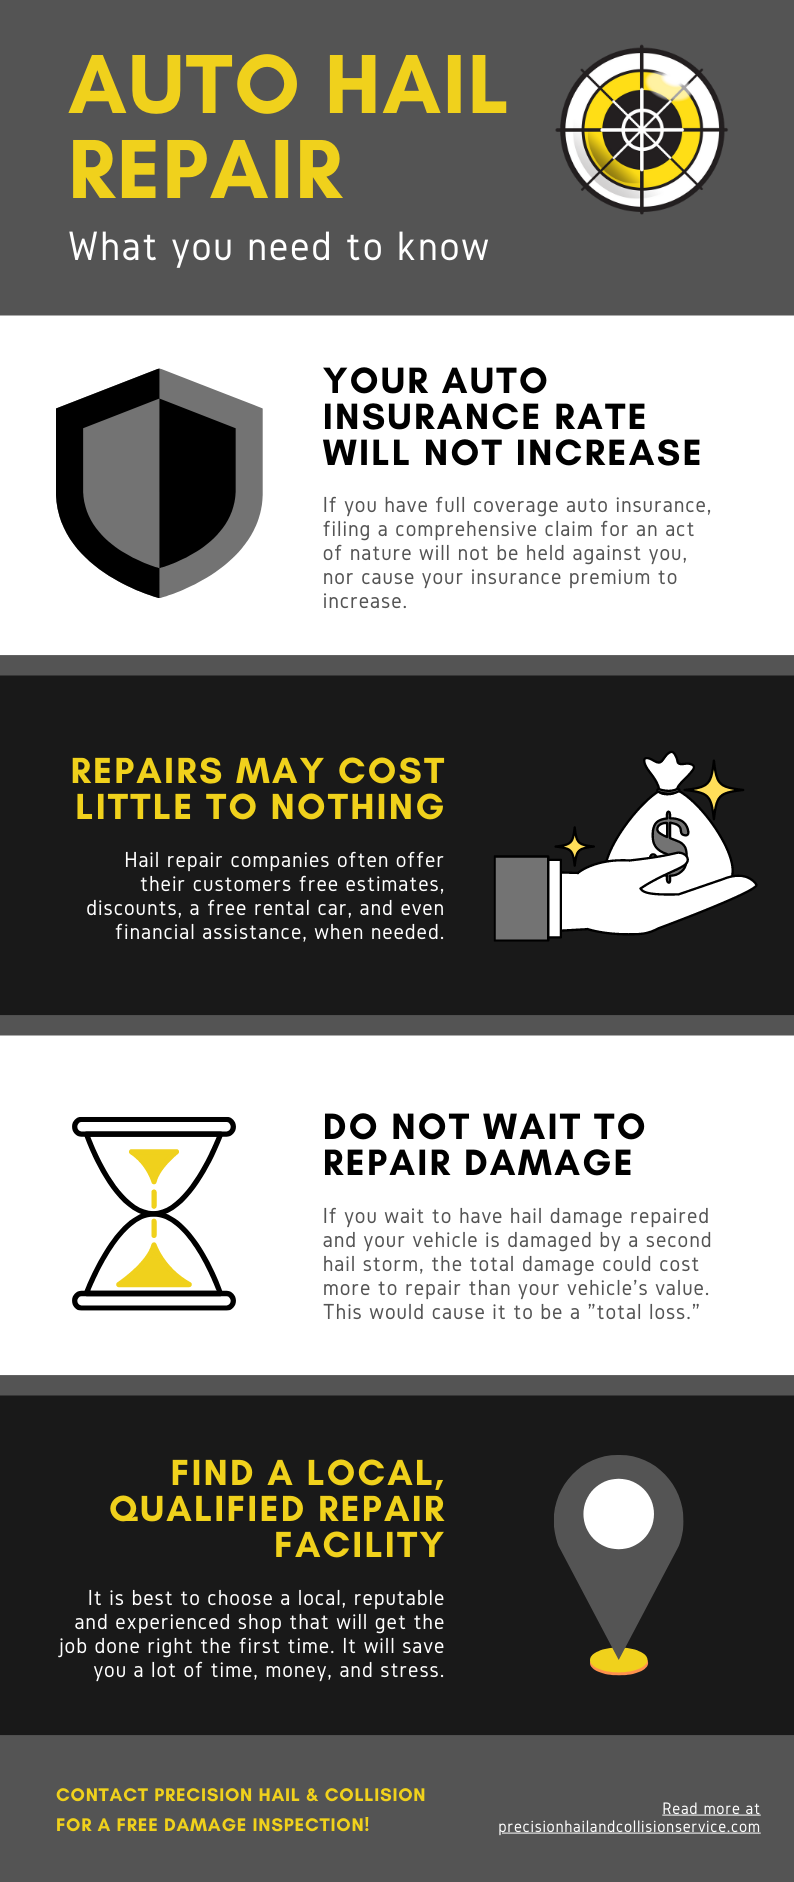 What You Need To Know About Auto Hail Repair